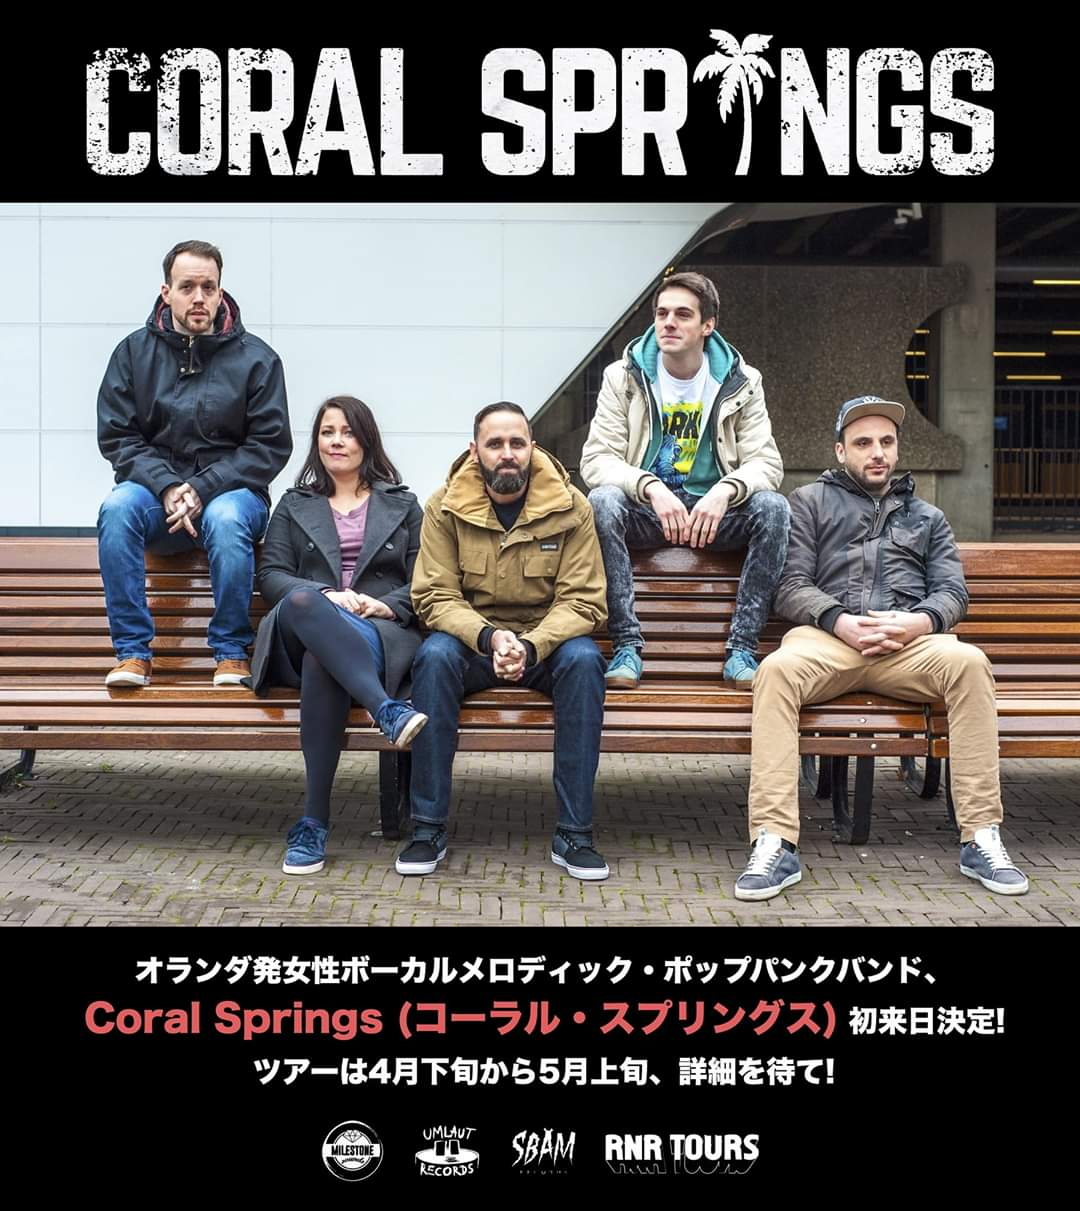 Coral Springs touraffiche Japan